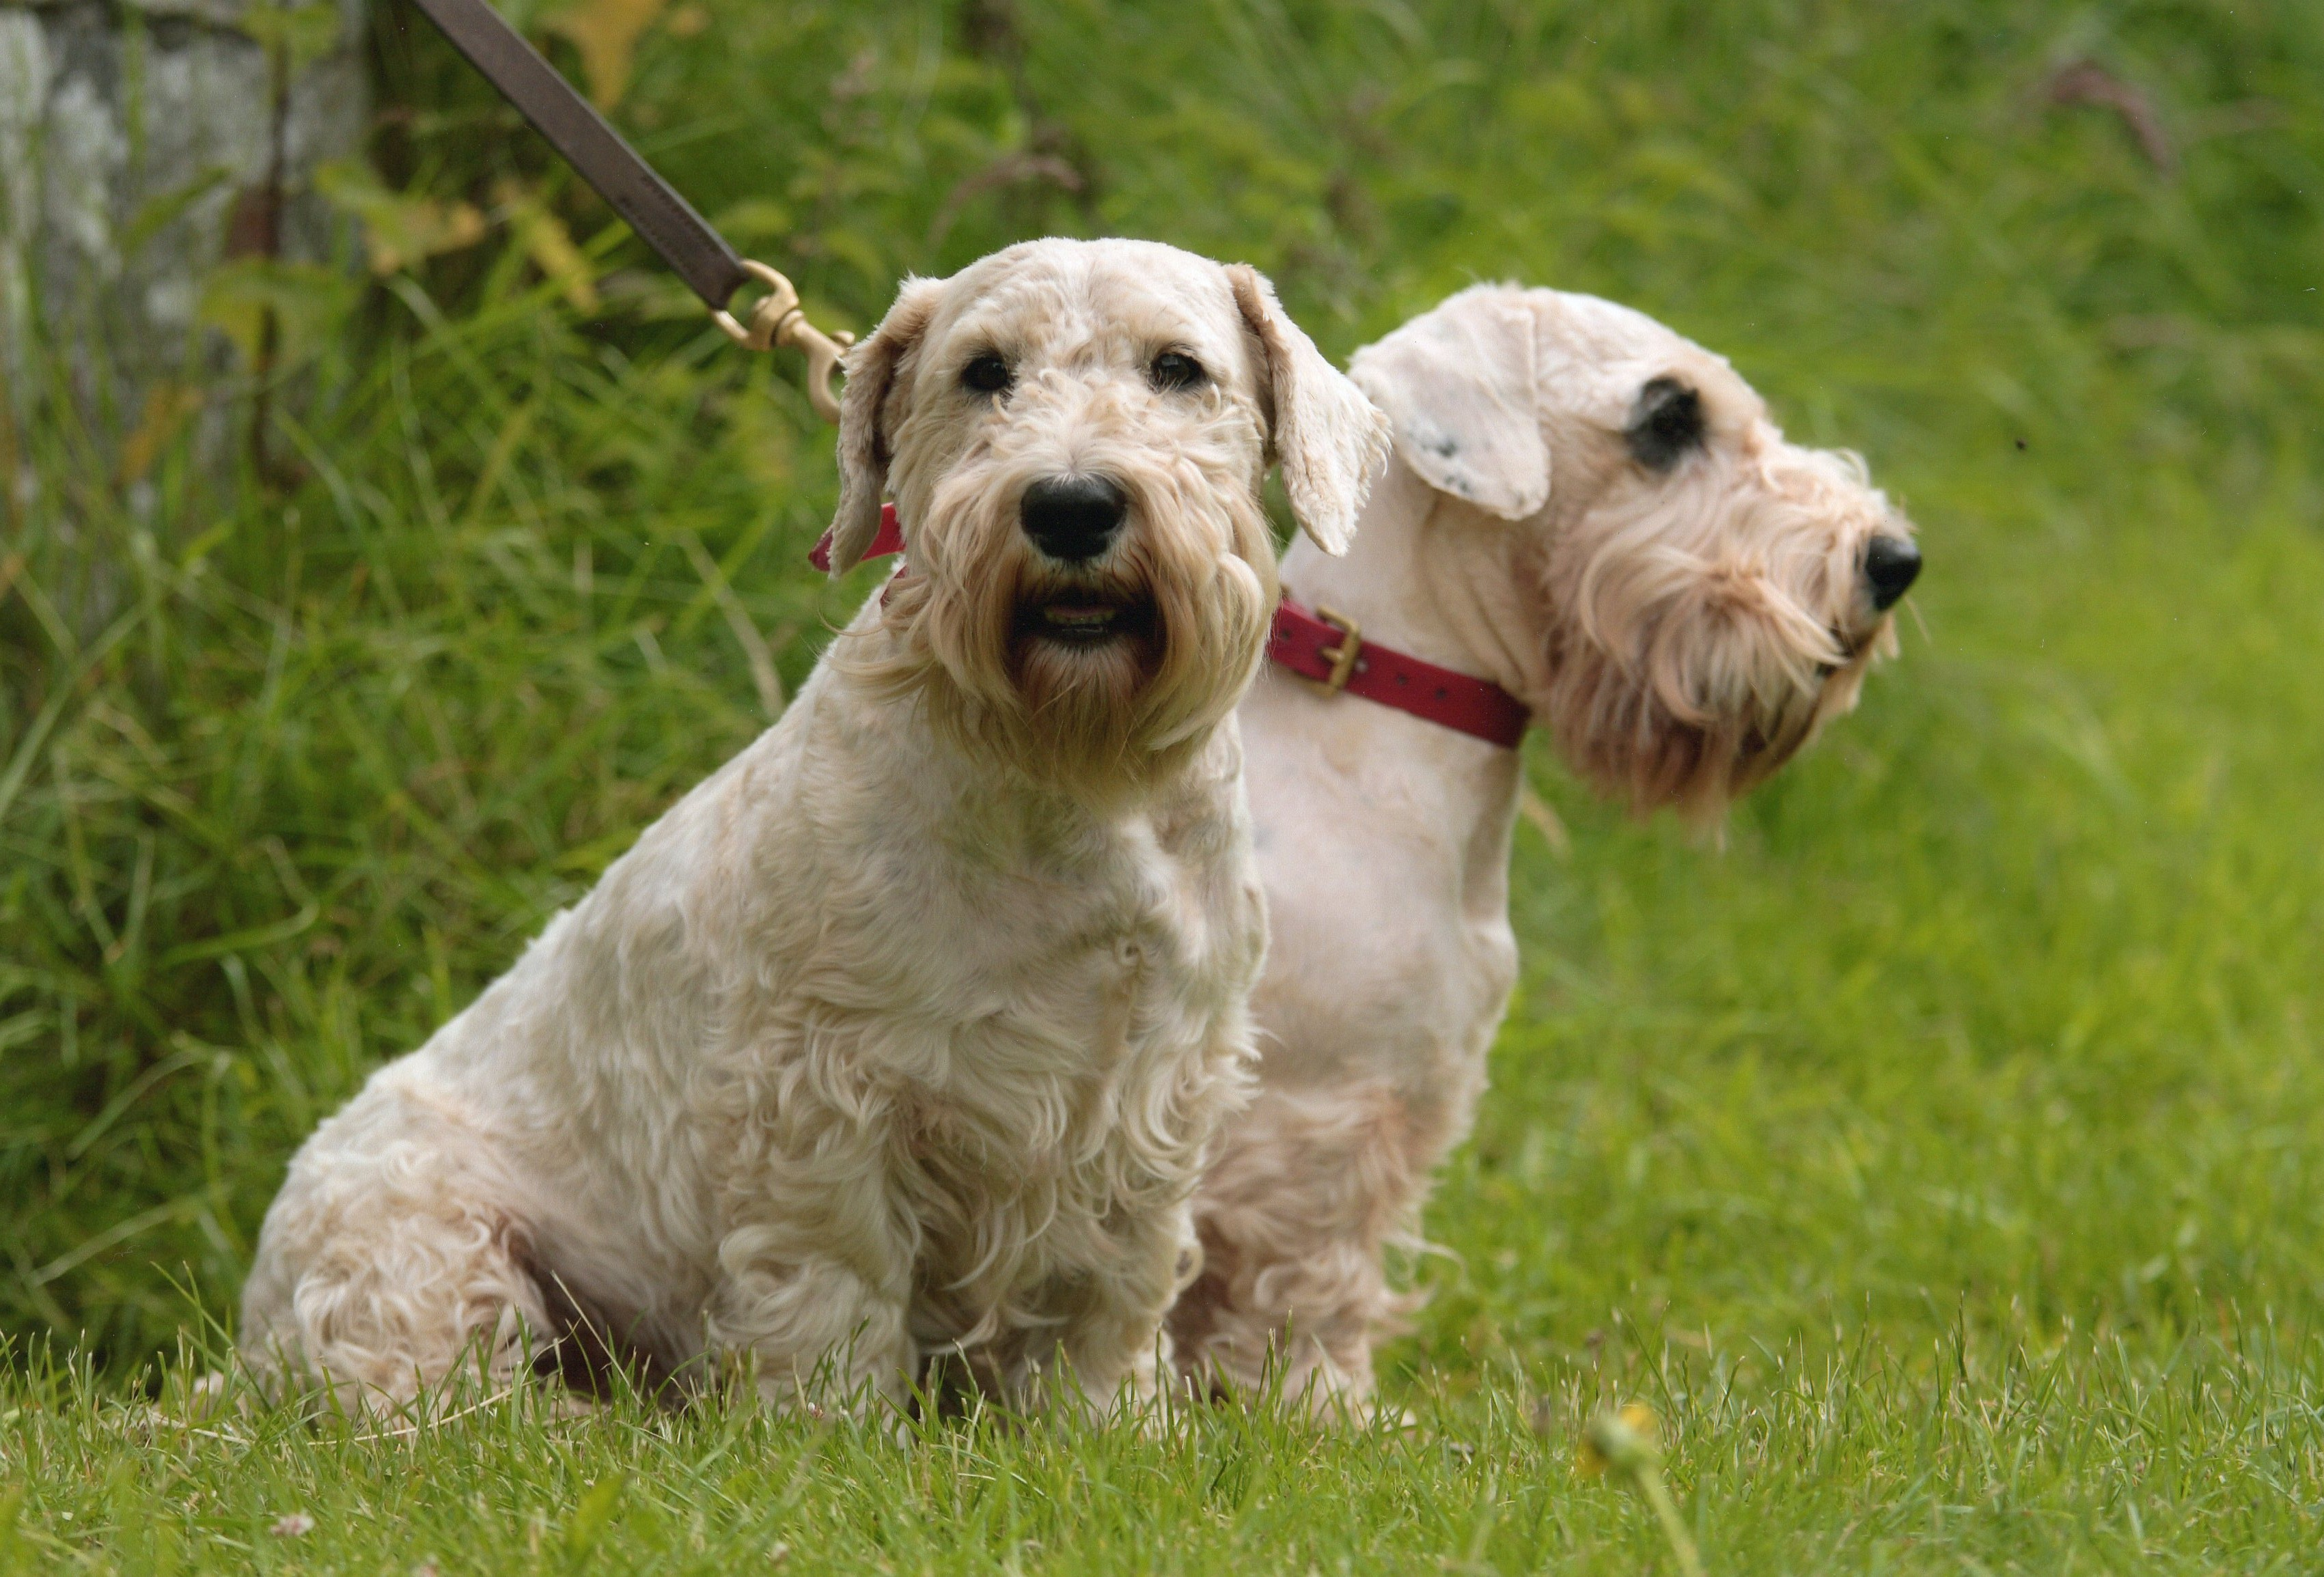 Sealyham Terrier Dog: Sealyham Sealyham Terrier Dogs In The Forest Breed